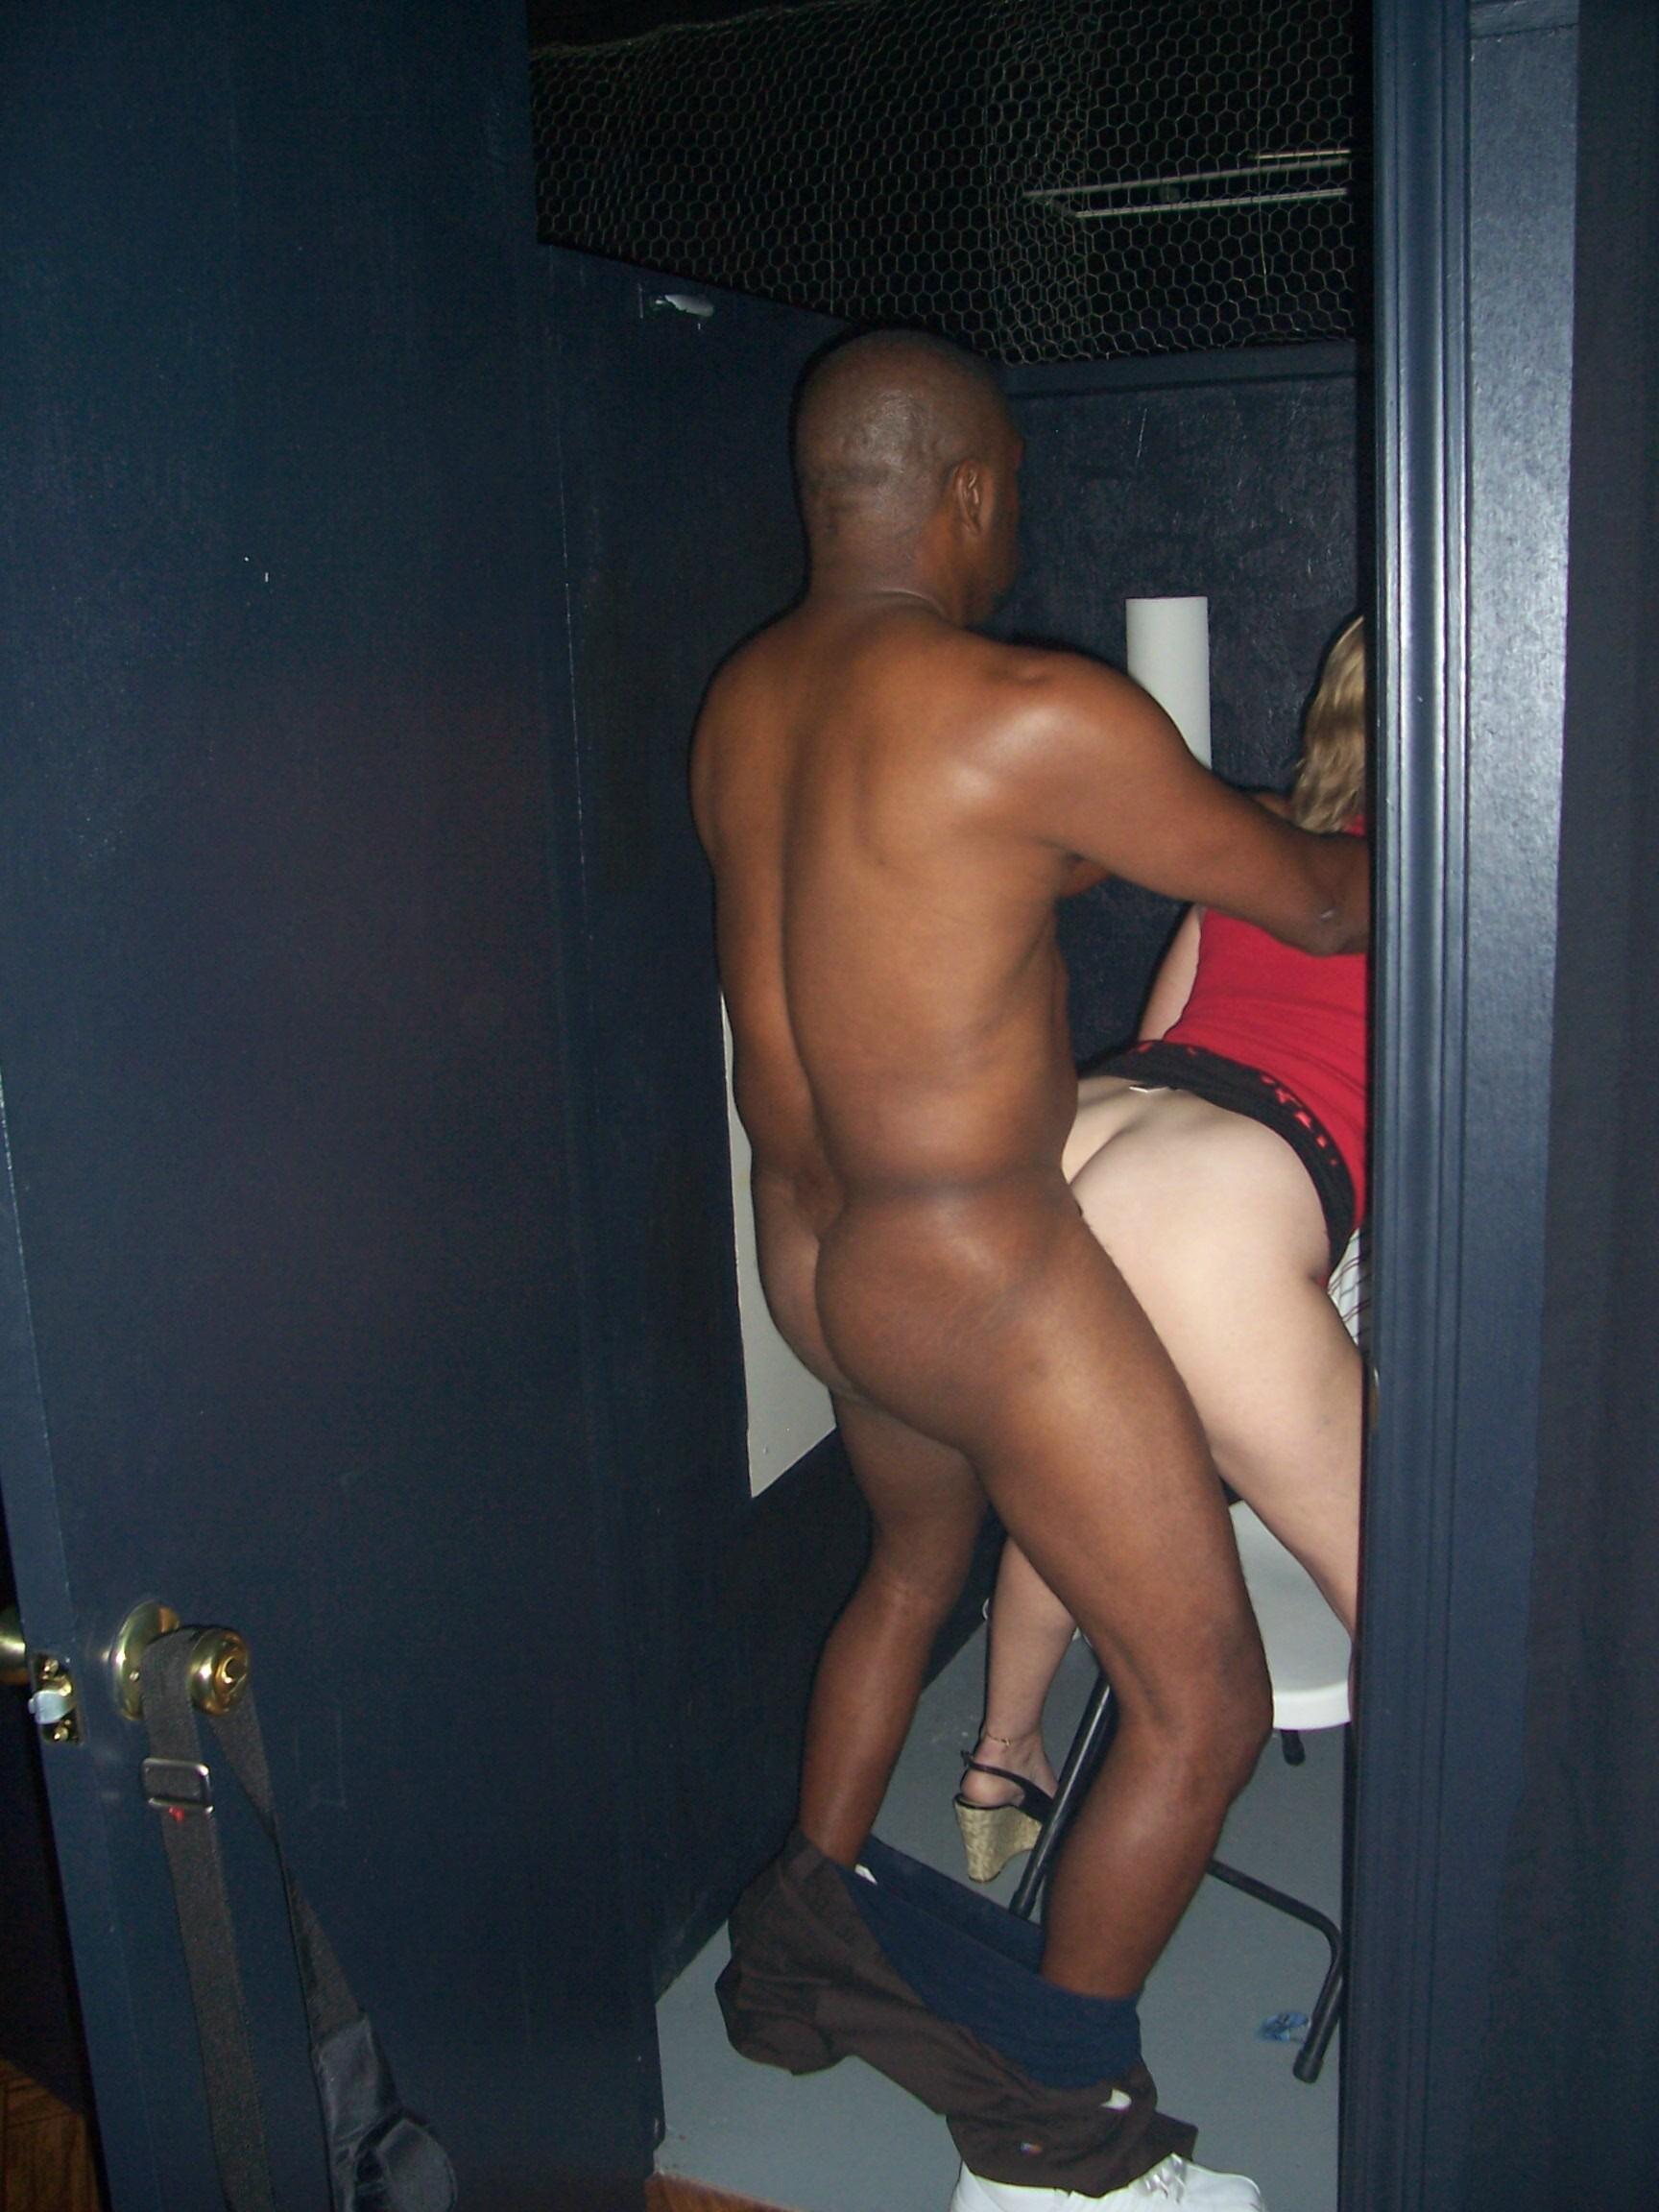 Very gloryhole video booths turns out?